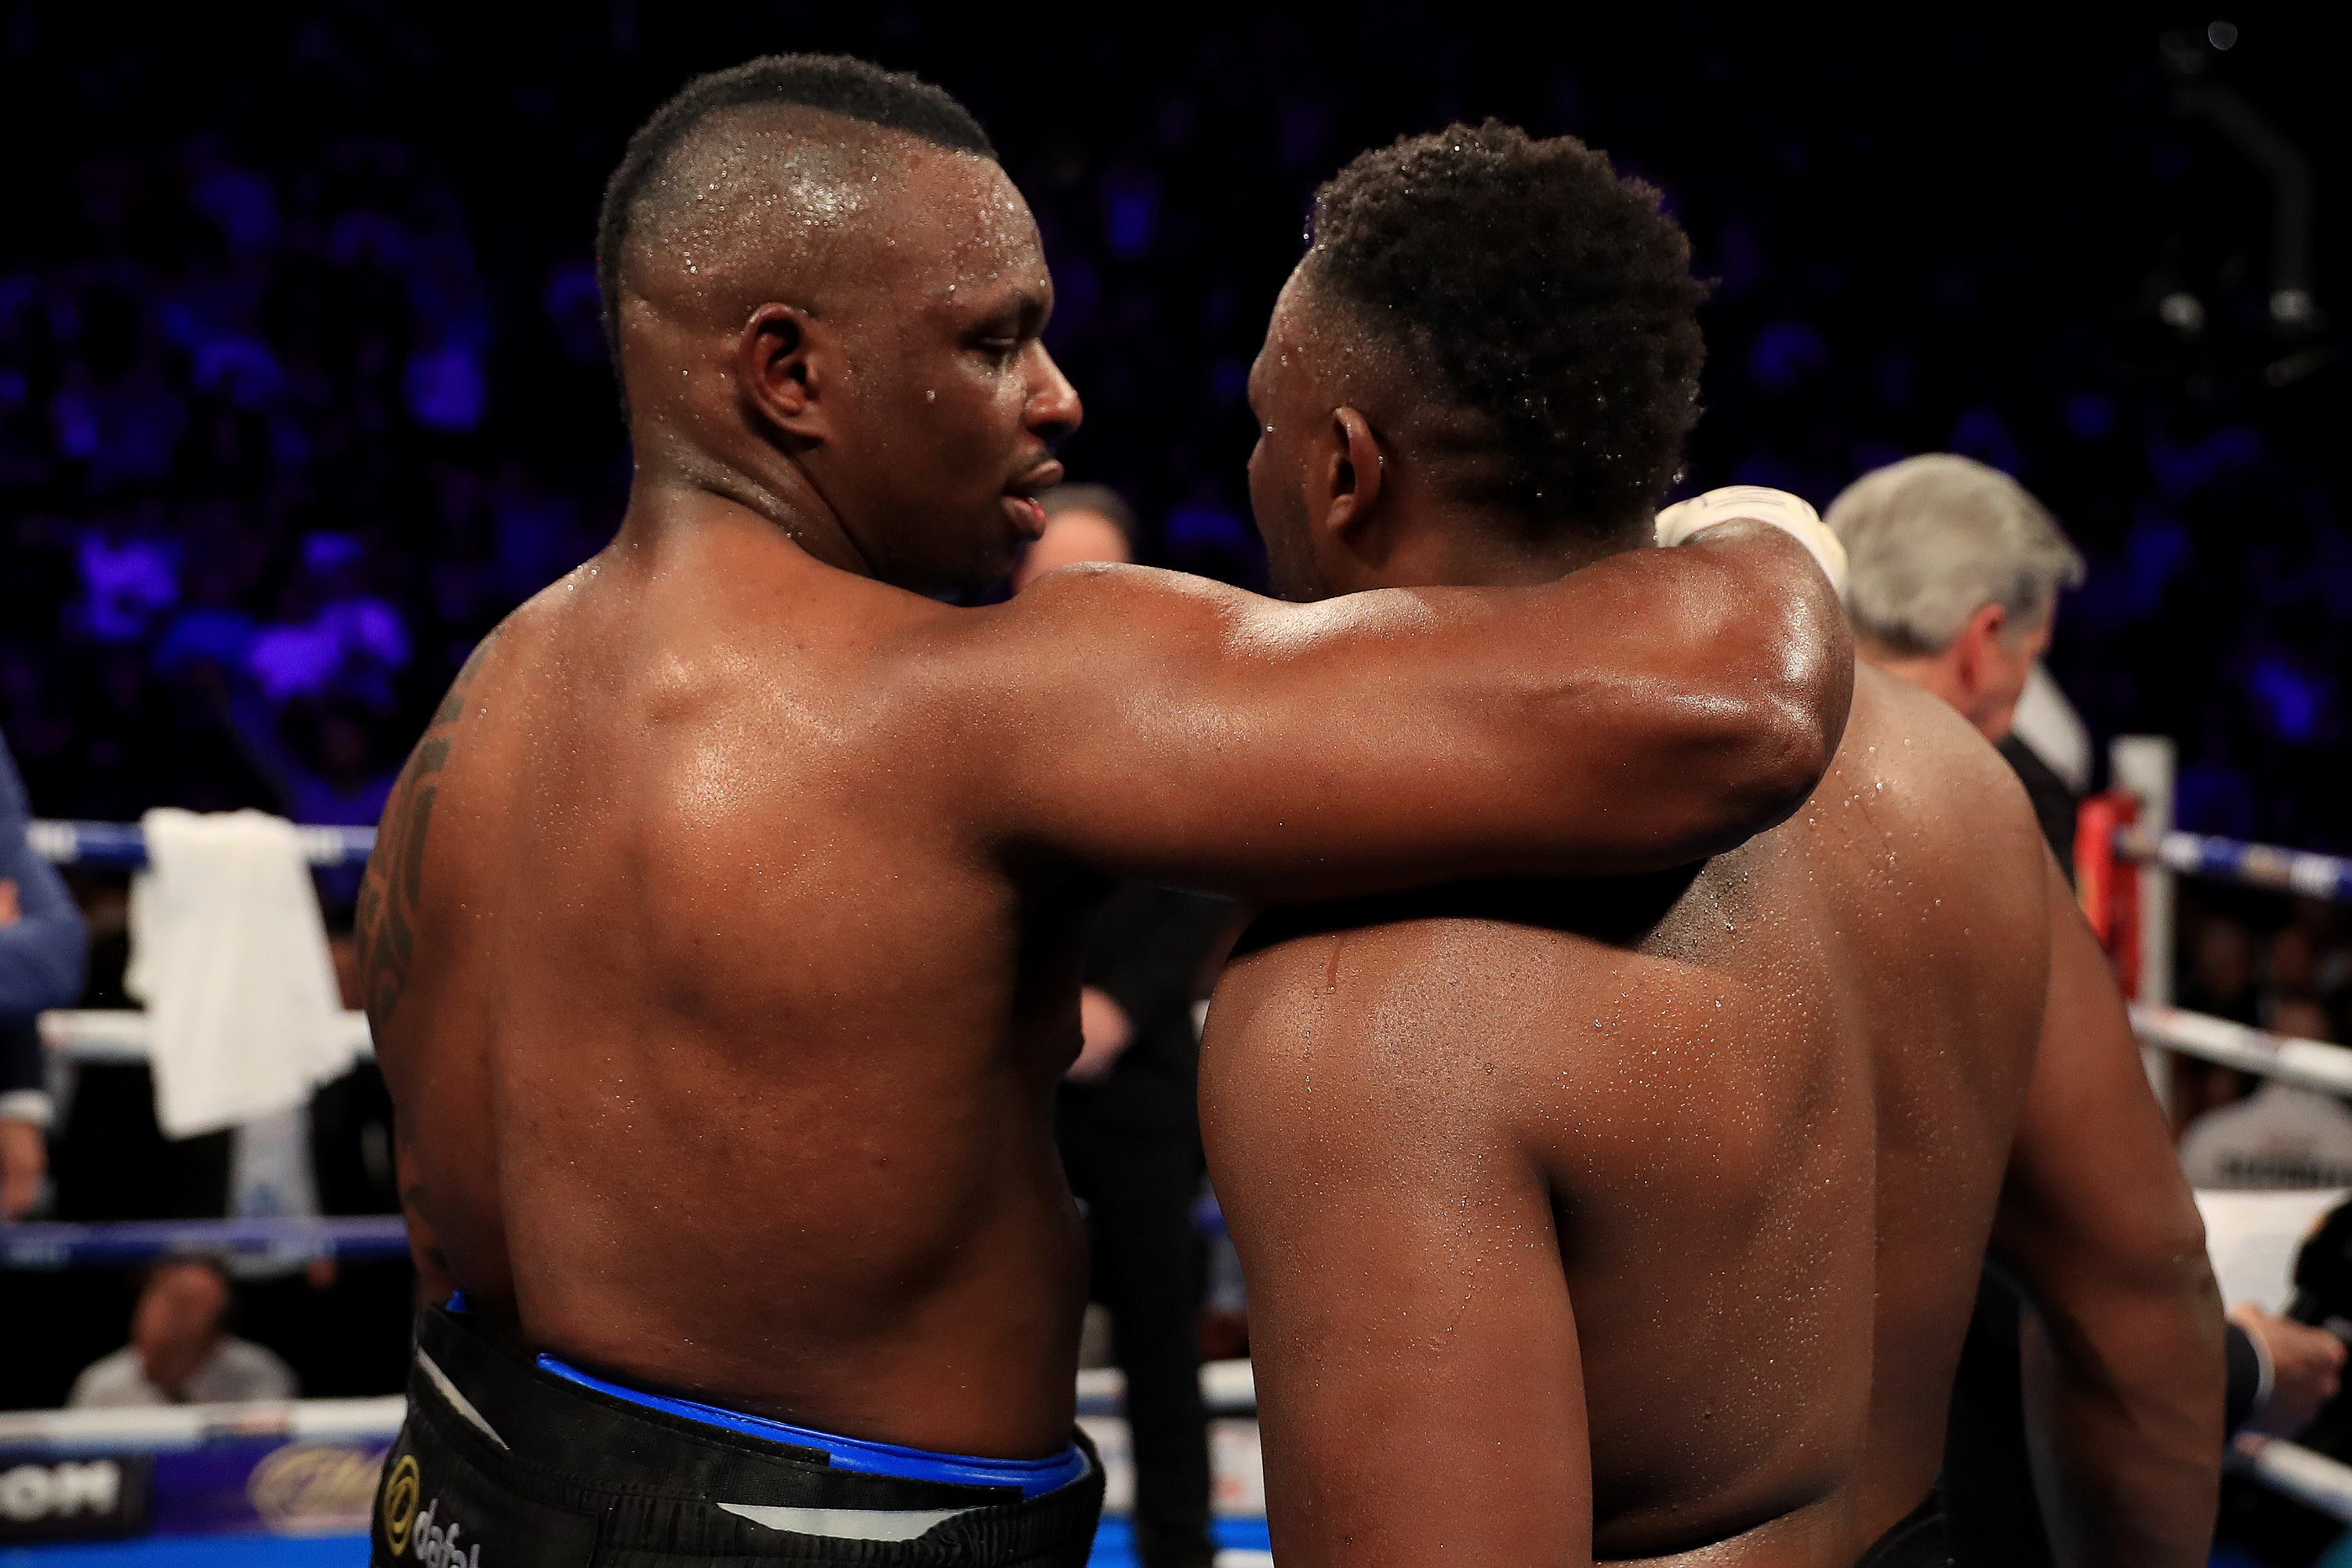 MANCHESTER, ENGLAND - DECEMBER 10: Dillian Whyte of Brixton (L) reacts to his victory over Dereck Chisora of Finchley during their WBC World Heavyweight Title Eliminator & WBC International Championship fight at Manchester Arena on December 10, 2016 in Manchester, England. (Photo by Richard Heathcote/Getty Images)